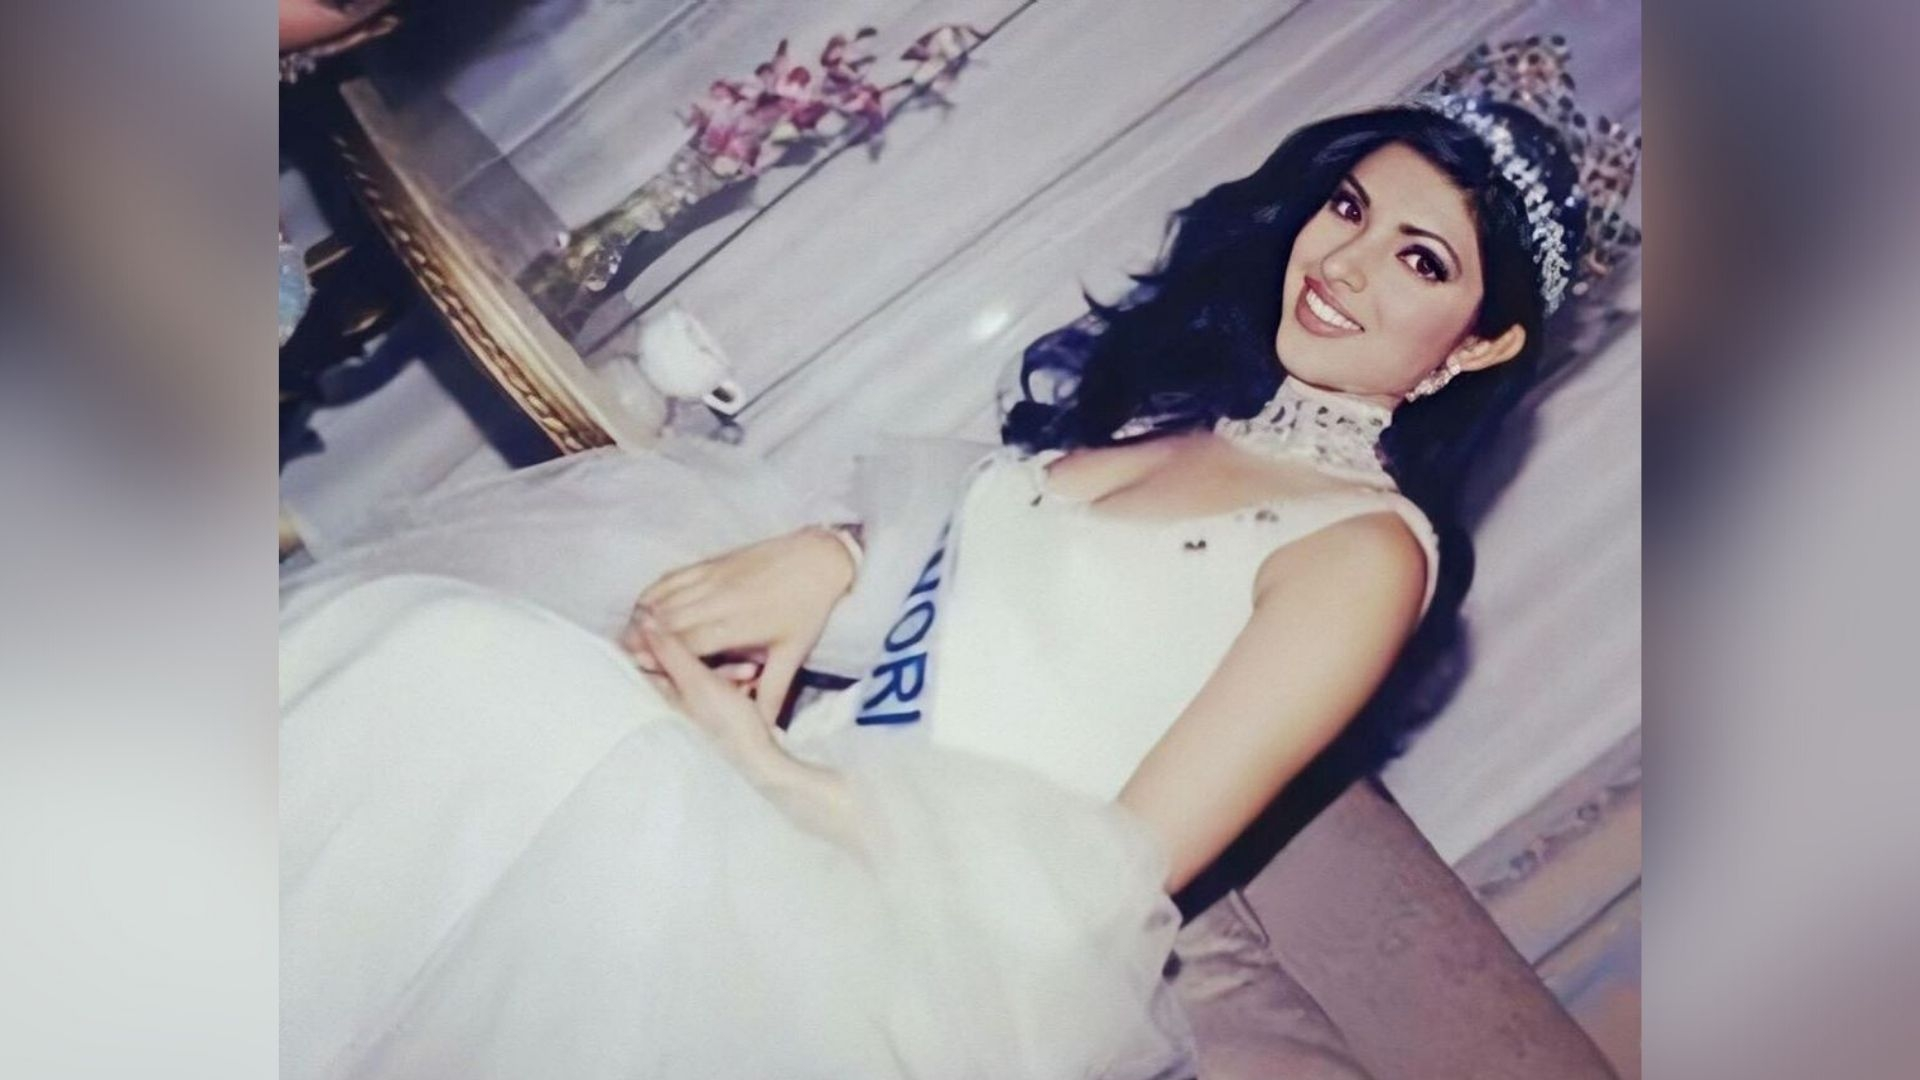 Girls Can Bring About Change: Priyanka Shares Miss World Pic